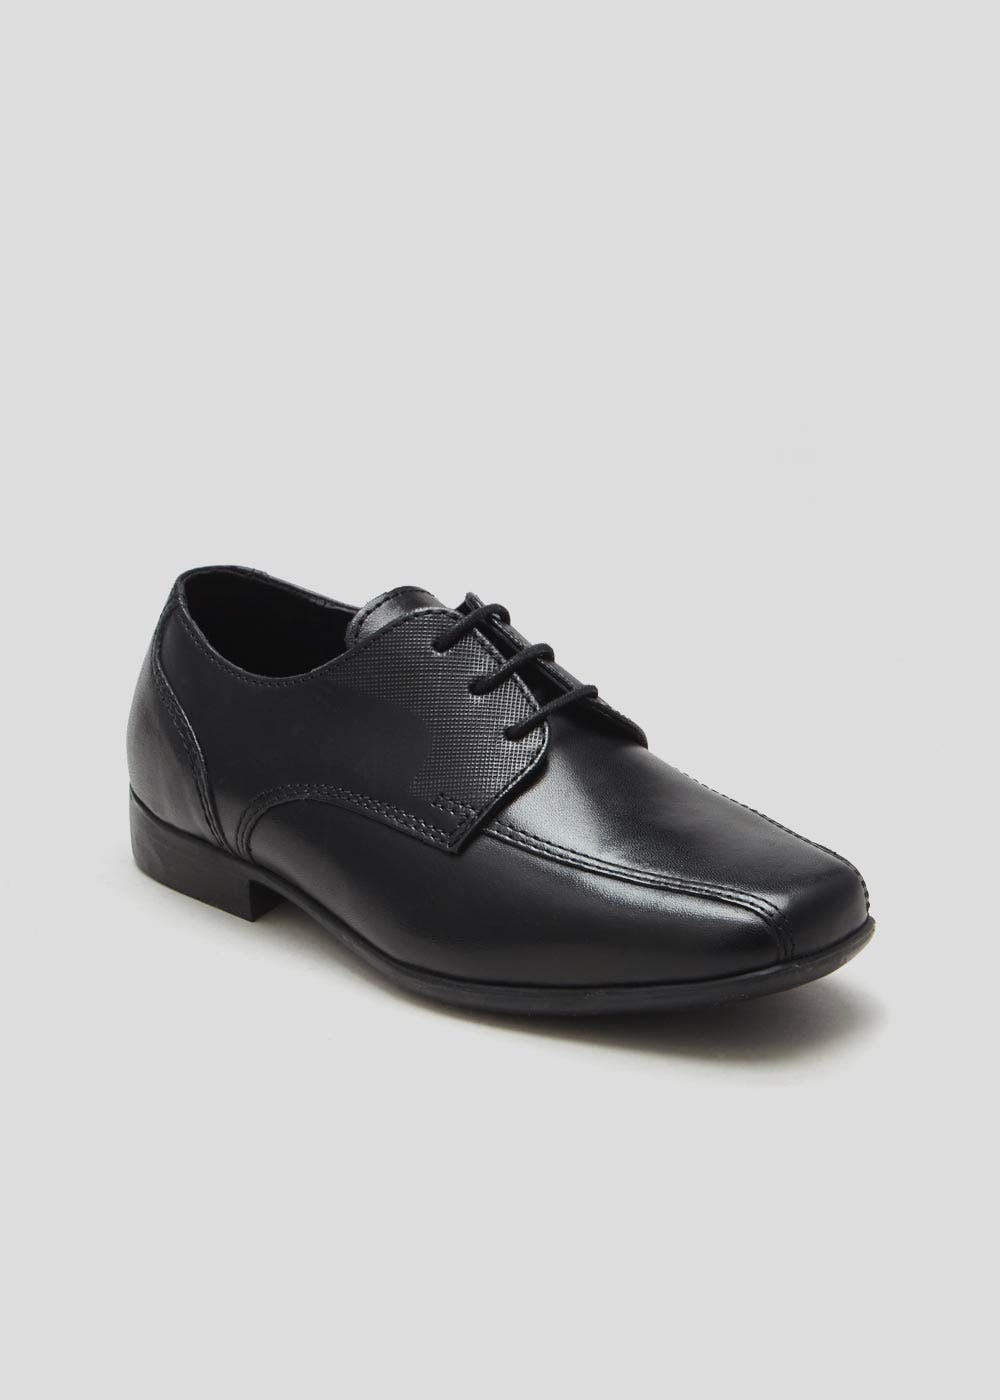 Boys Real Leather School Shoes (Younger